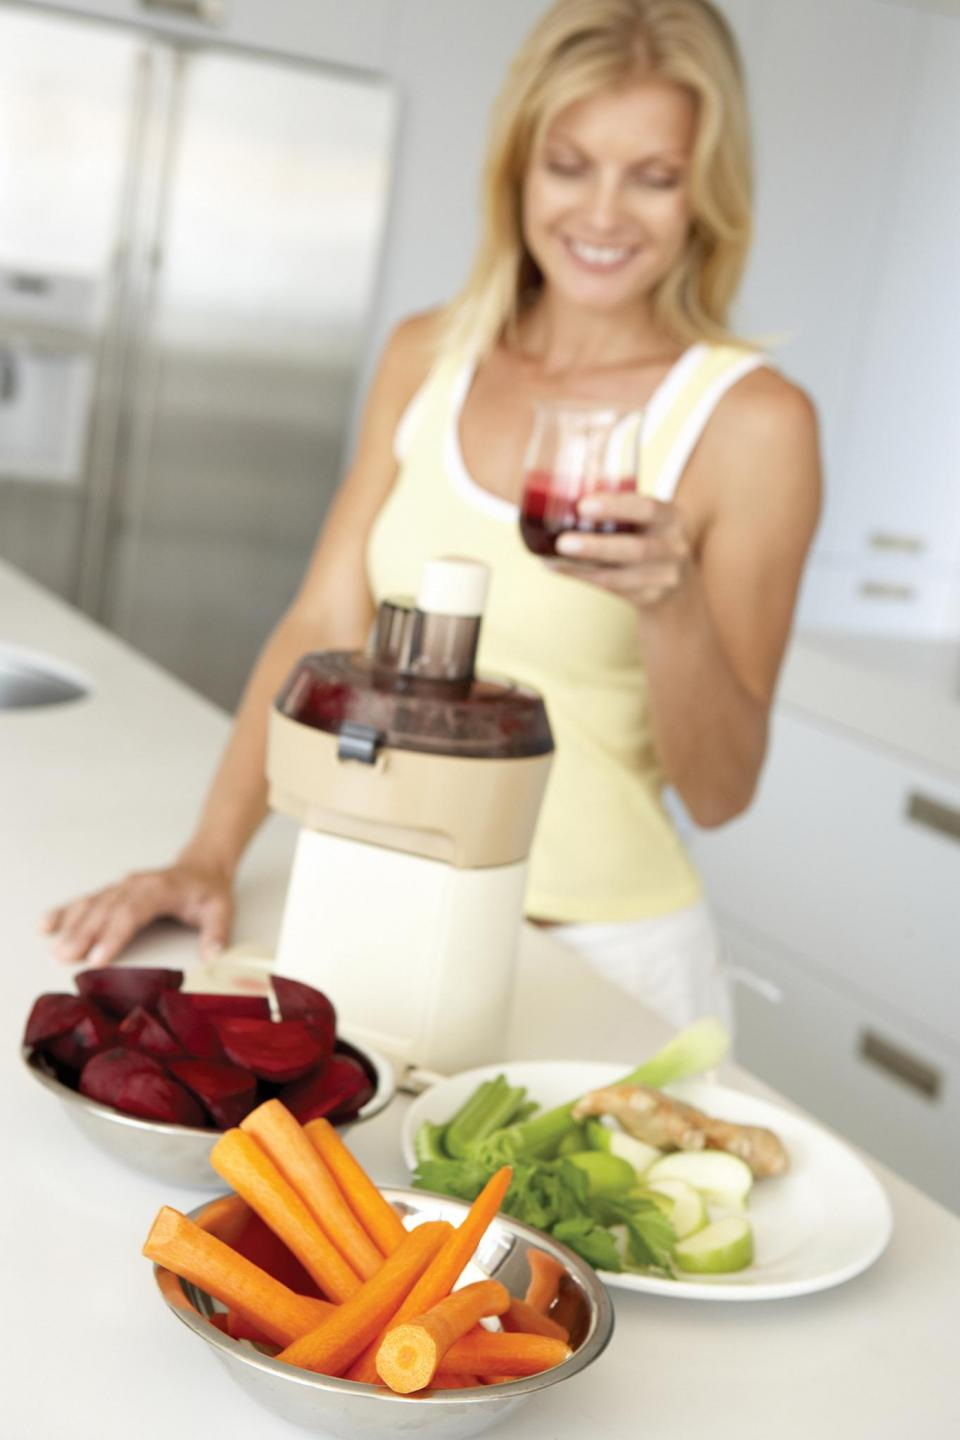 A woman drinking a fresh beetroot smoothie. Compounds found in beetroots can disrupt any cancerous mutation processes in cells. Photo: Shutterstock.com